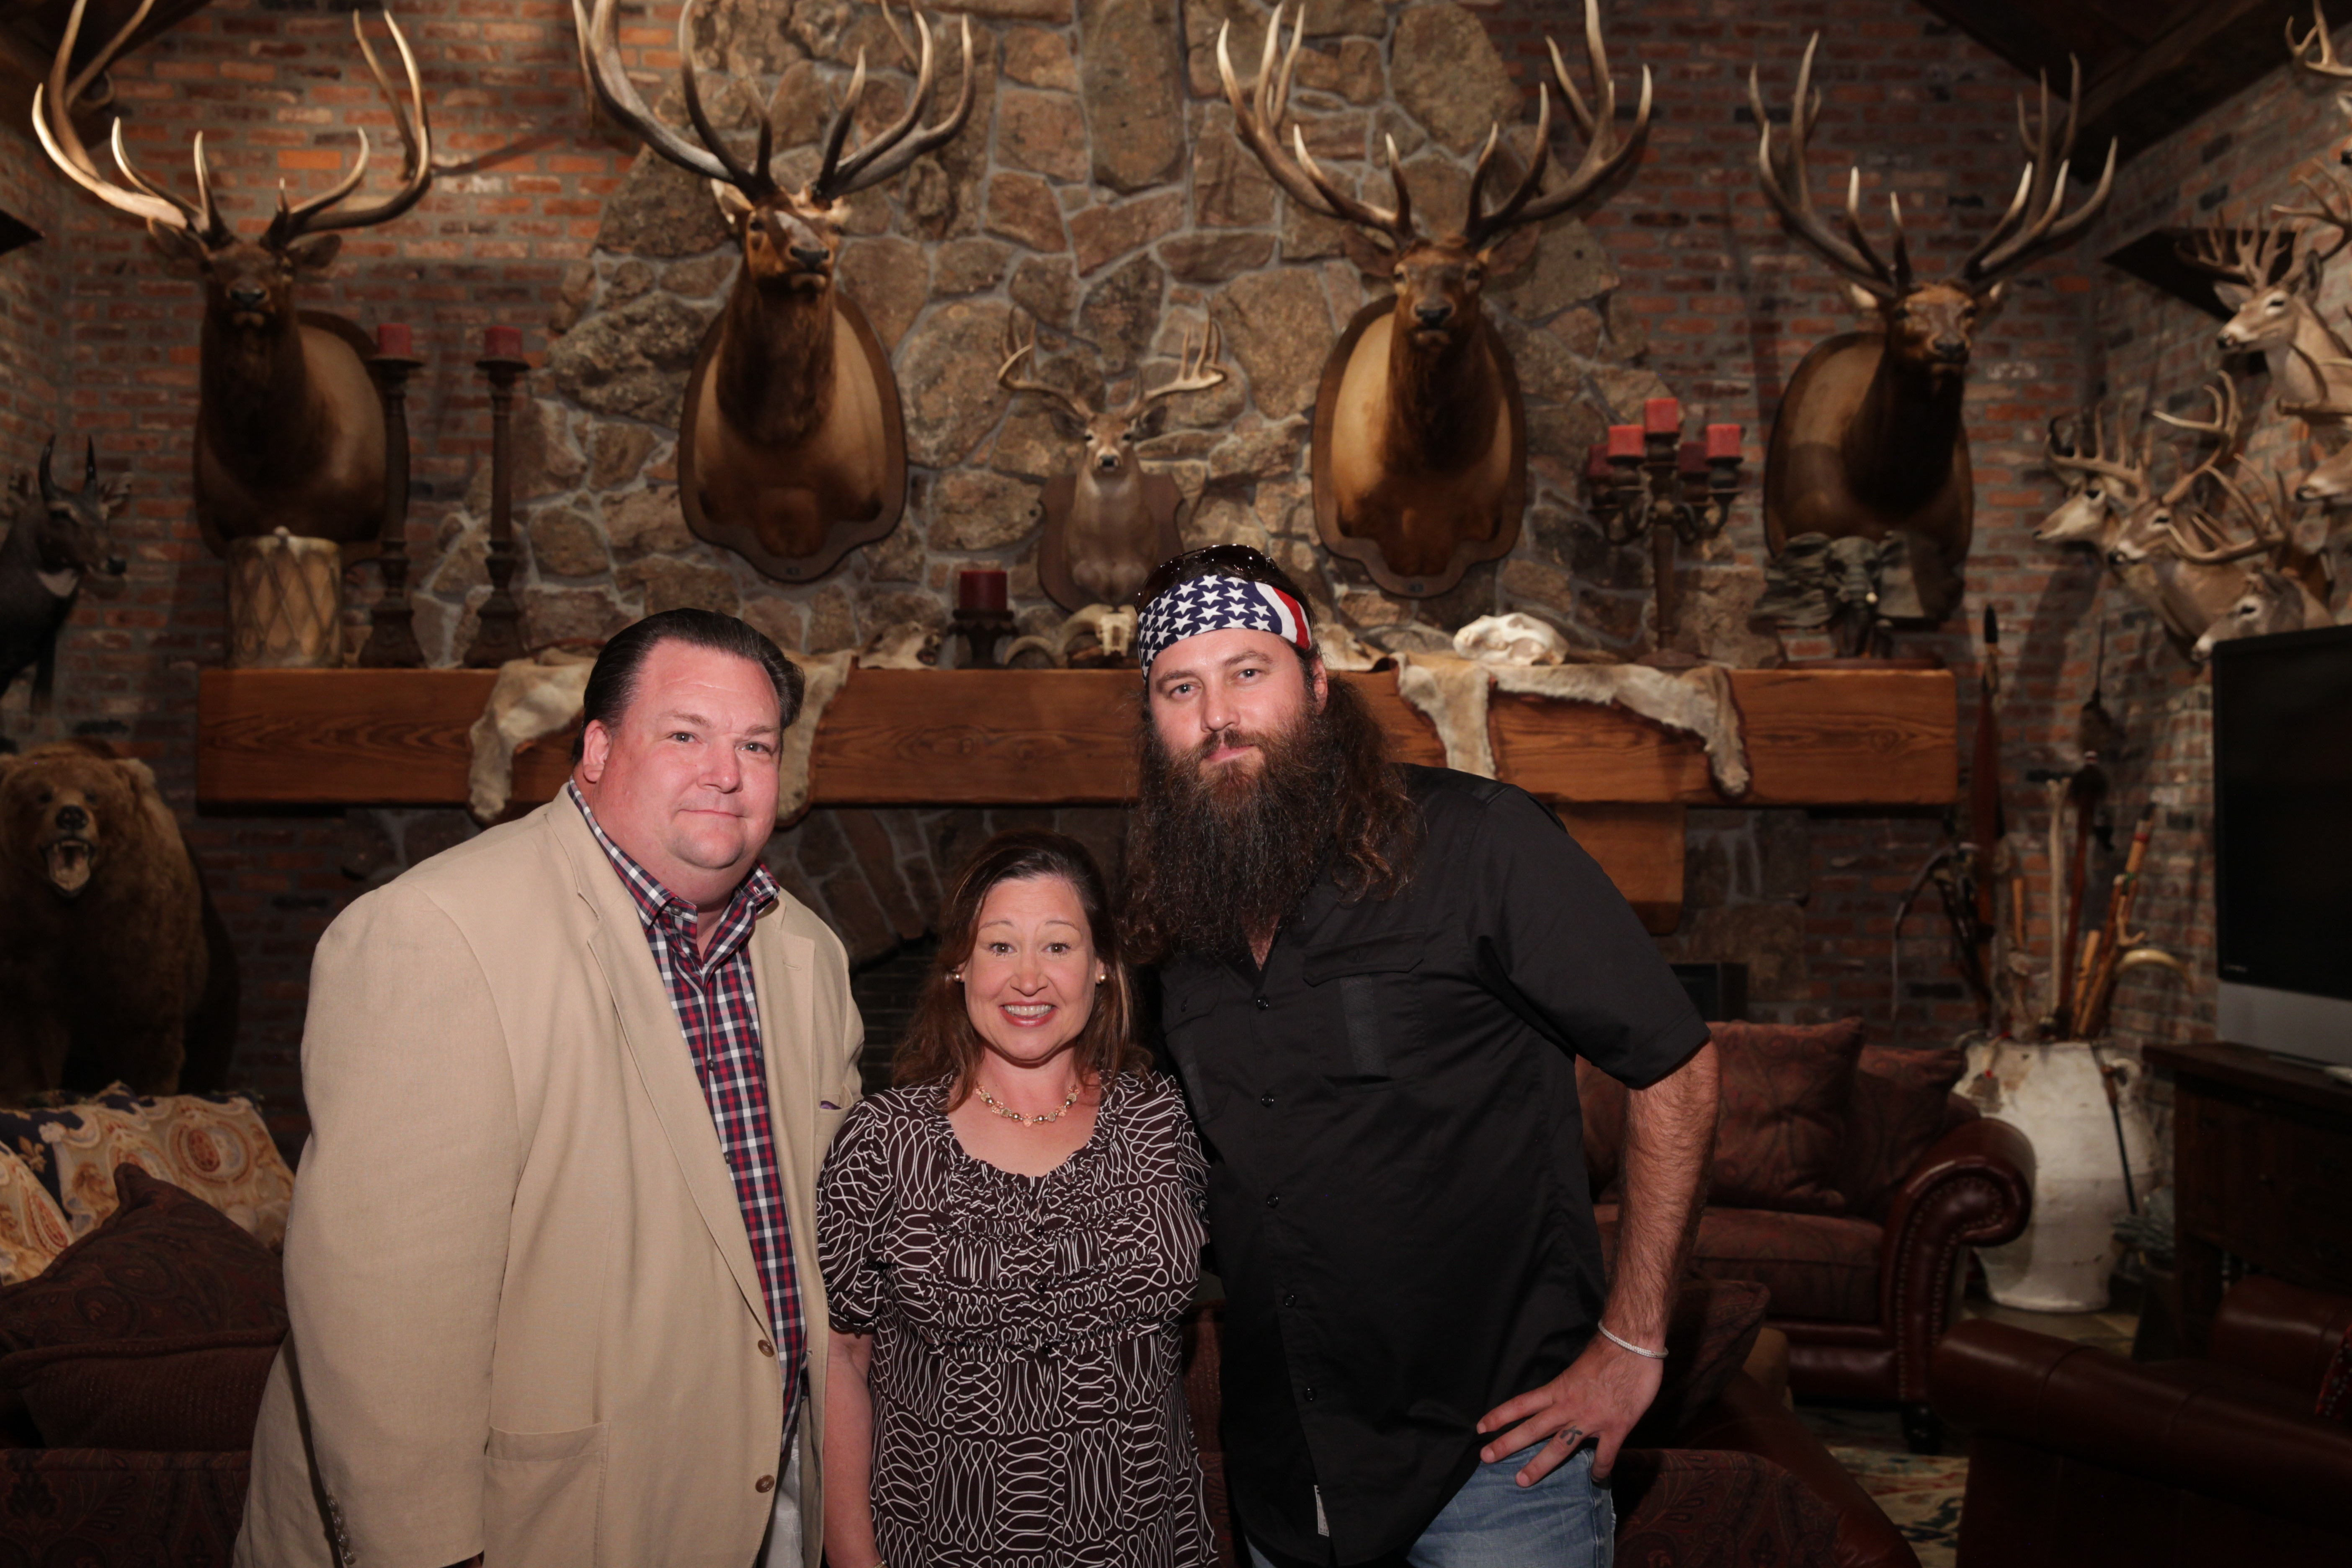 Dr. Sutherlin with Willie Robertson (Duck Dynasty)